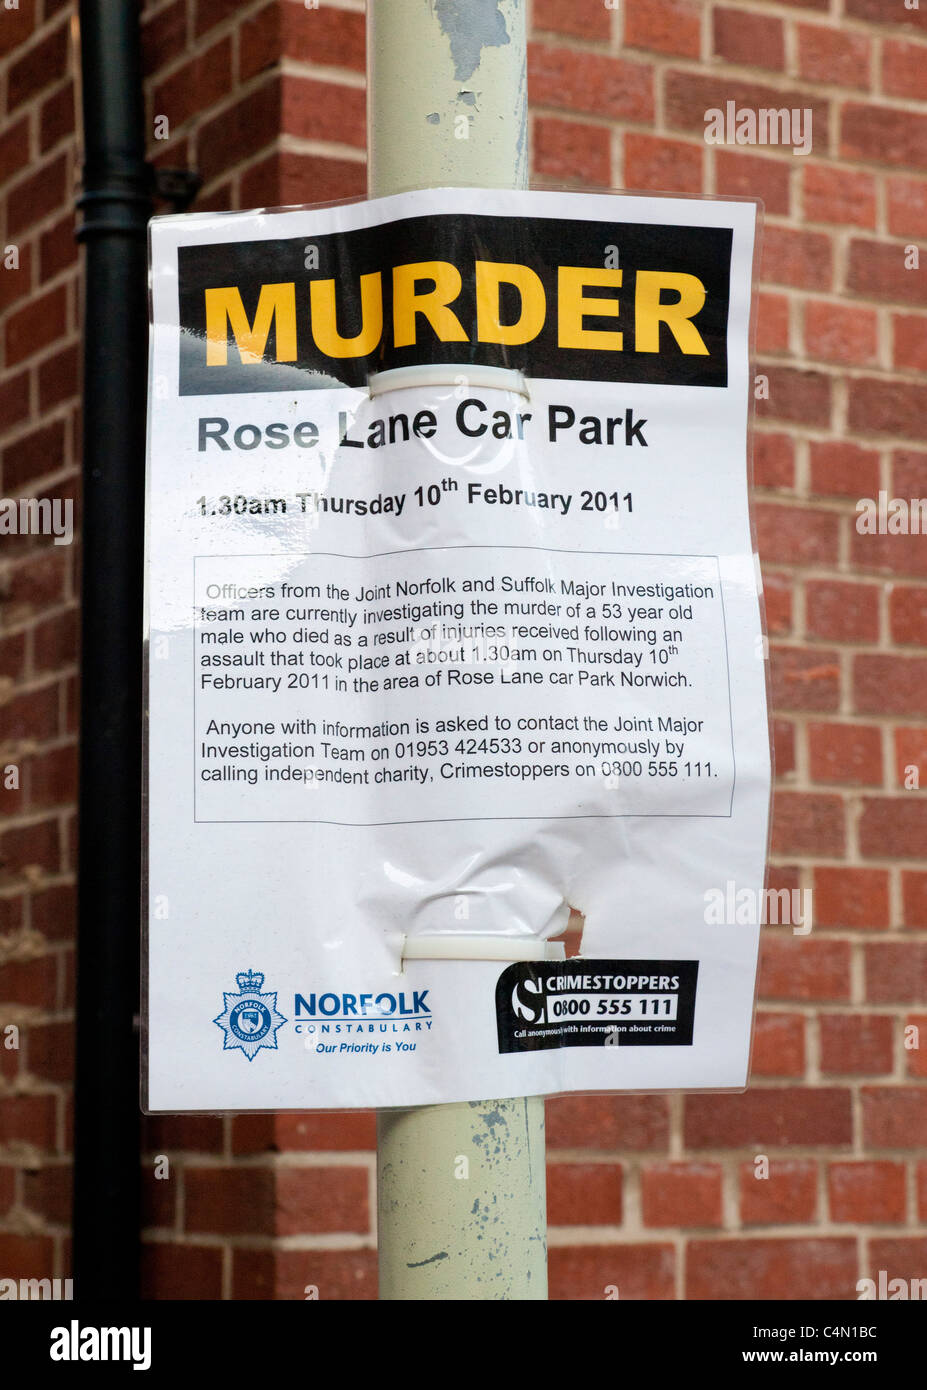 Murder investigation notice posted in UK - Stock Image